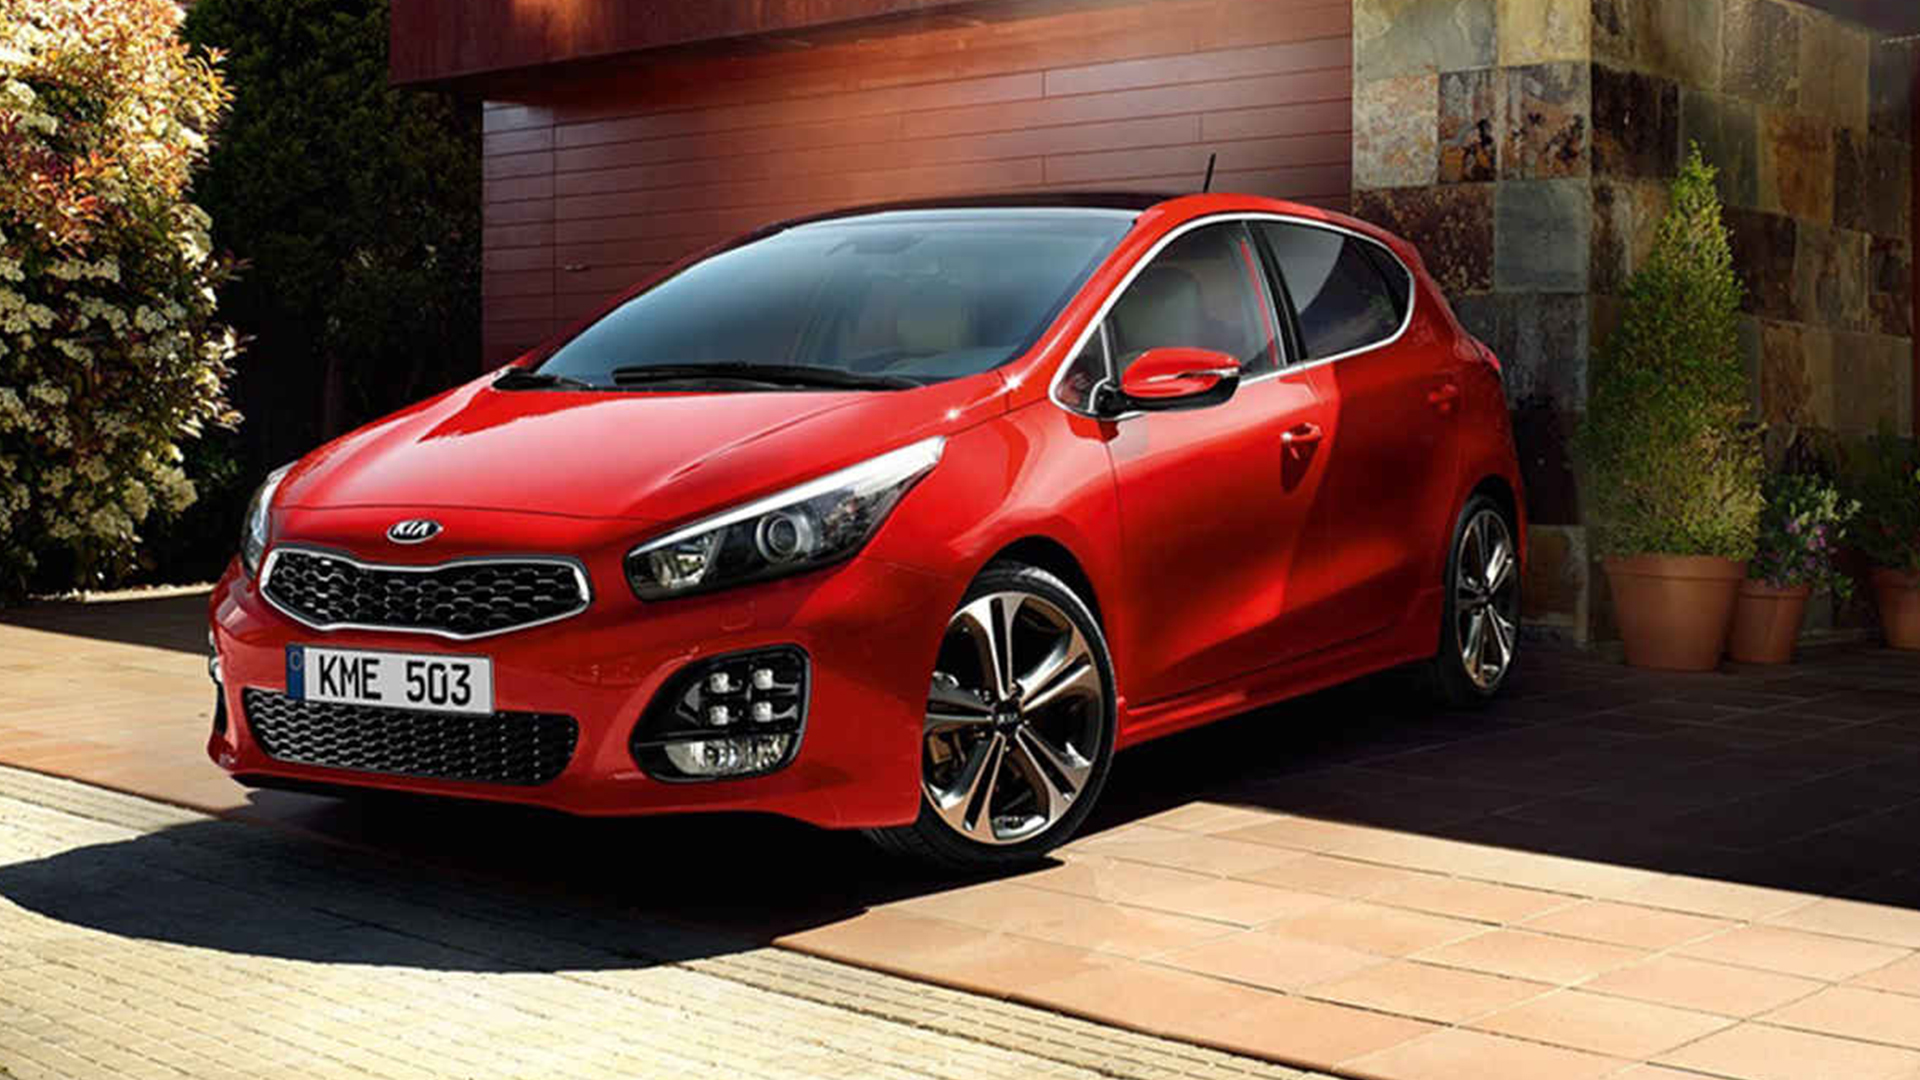 kia ceed 2018 - price, mileage, reviews, specification, gallery